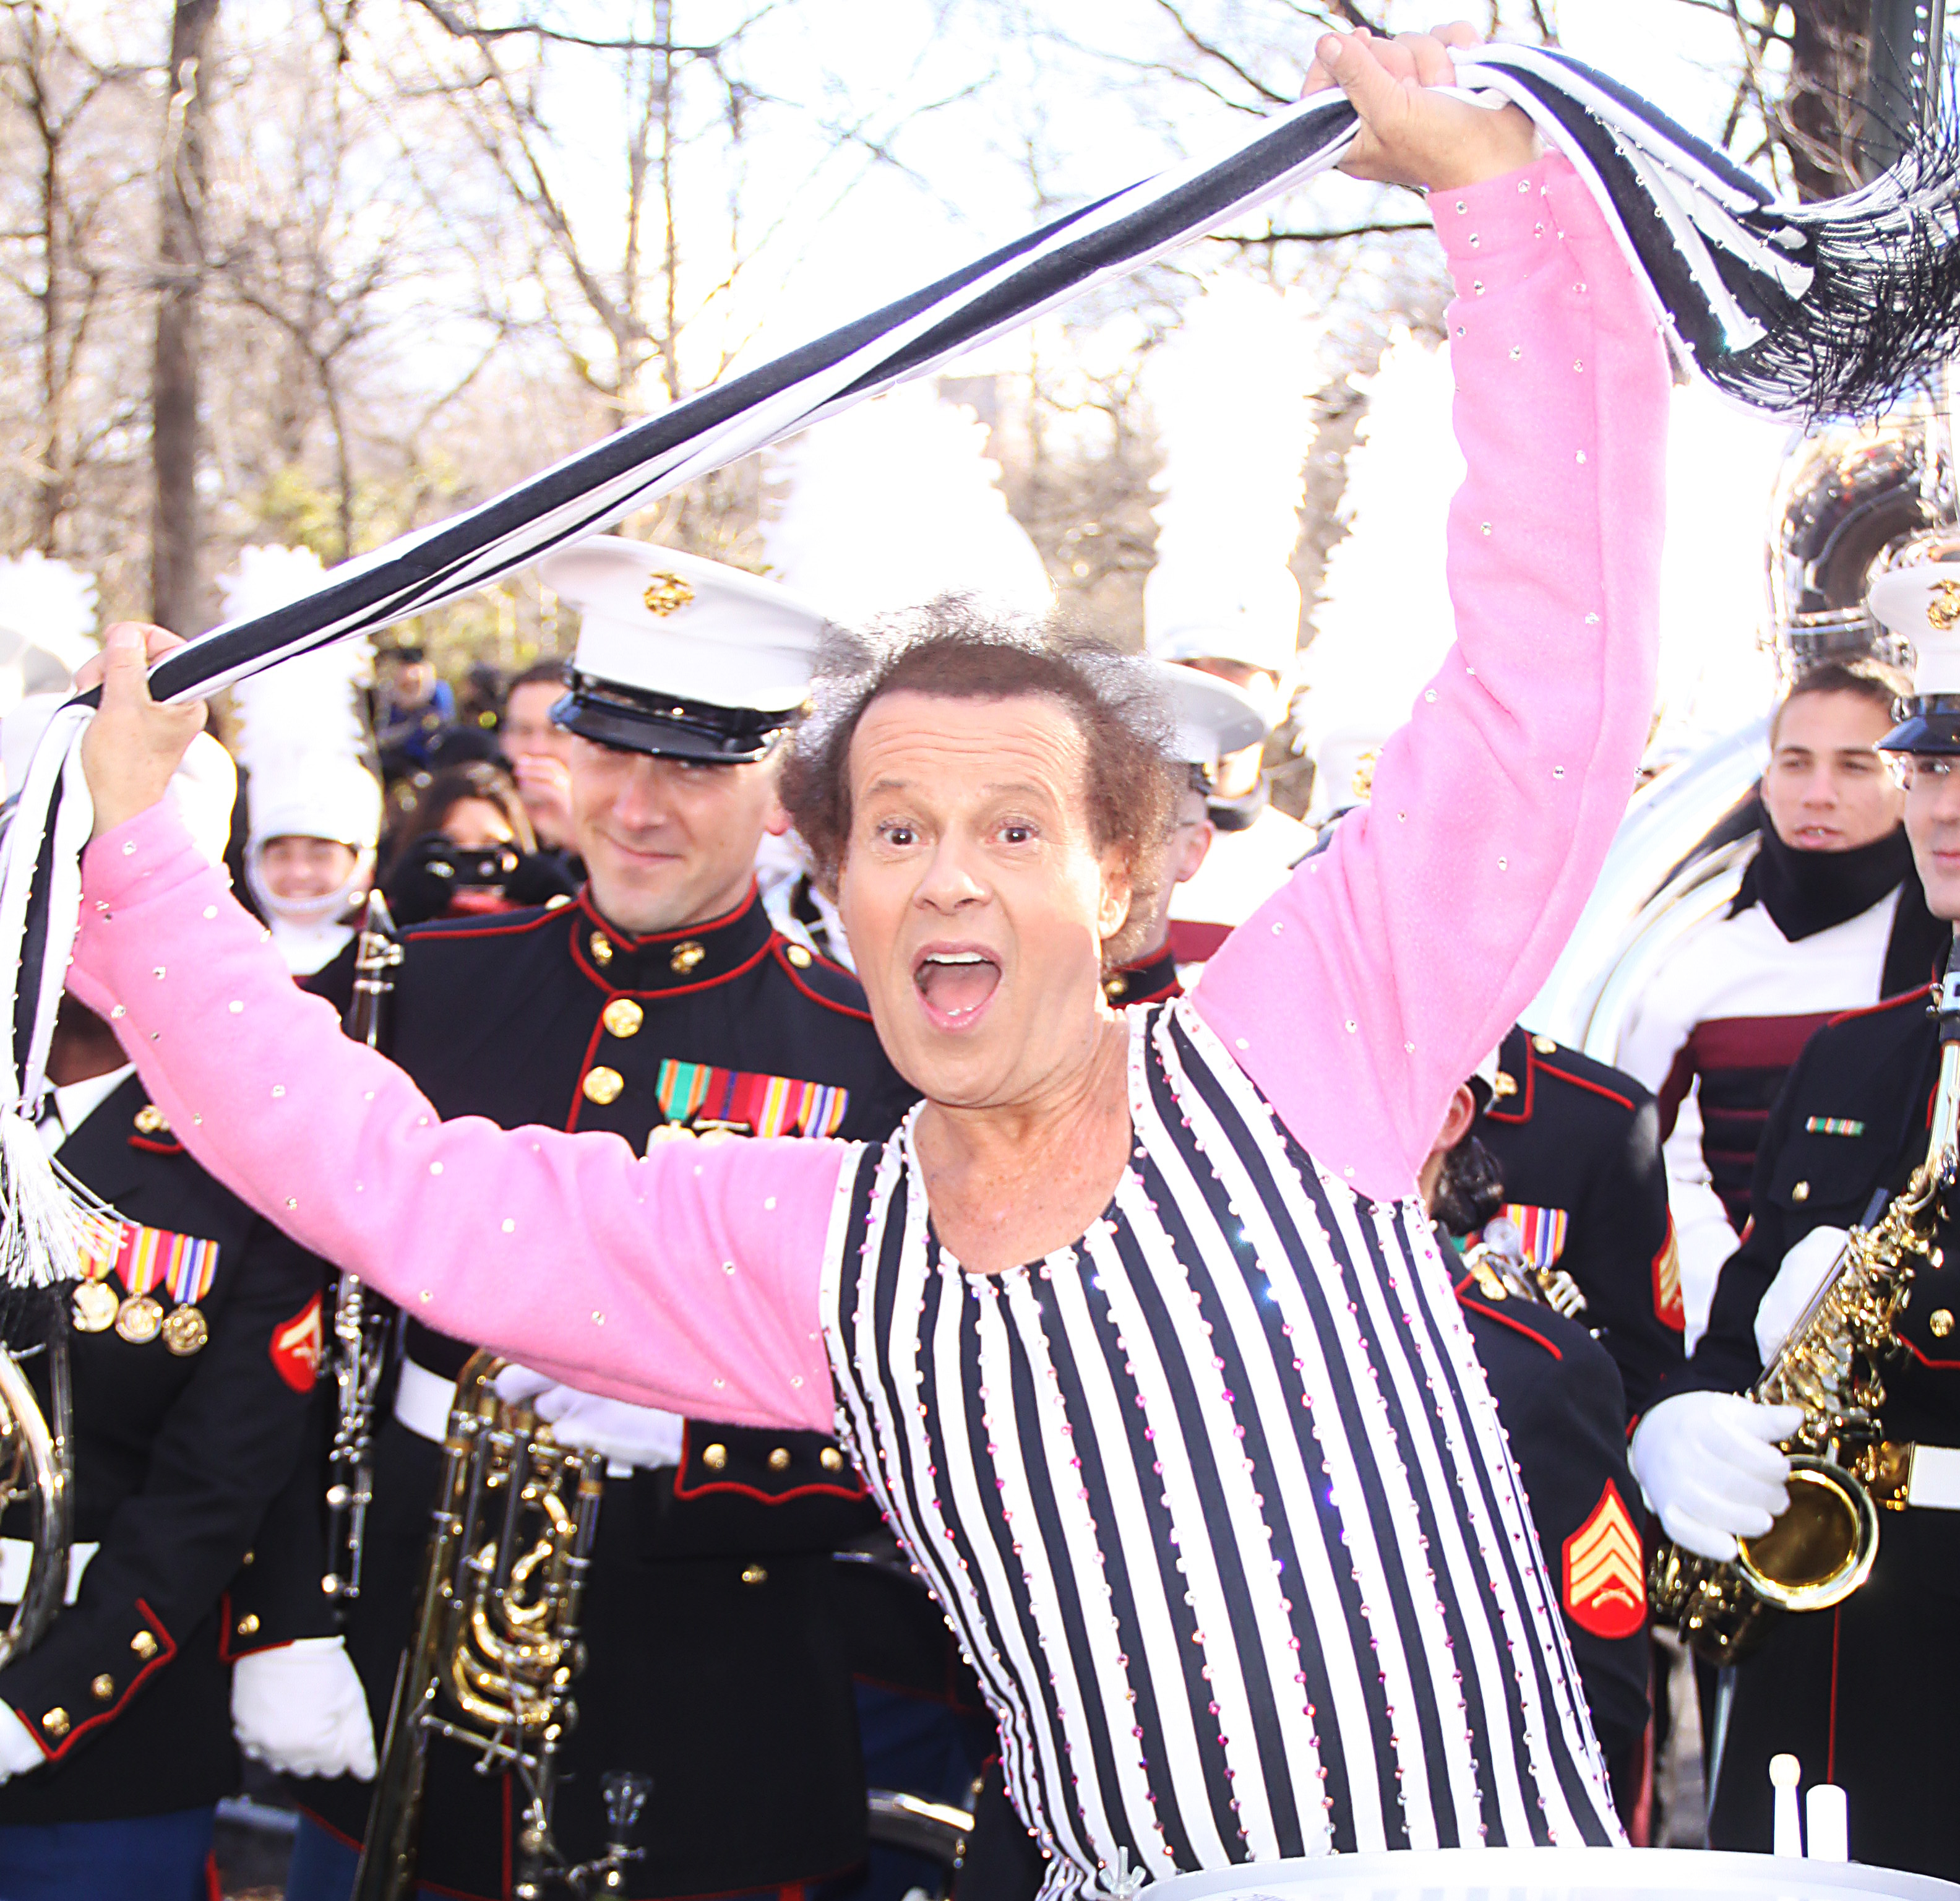 The 2013 Macy's Thanksgiving Day Parade in New York City  Featuring: Richard Simmons Where: New York City, New York, United States When: 28 Nov 2013 Credit: Mr. Blue/WENN.com